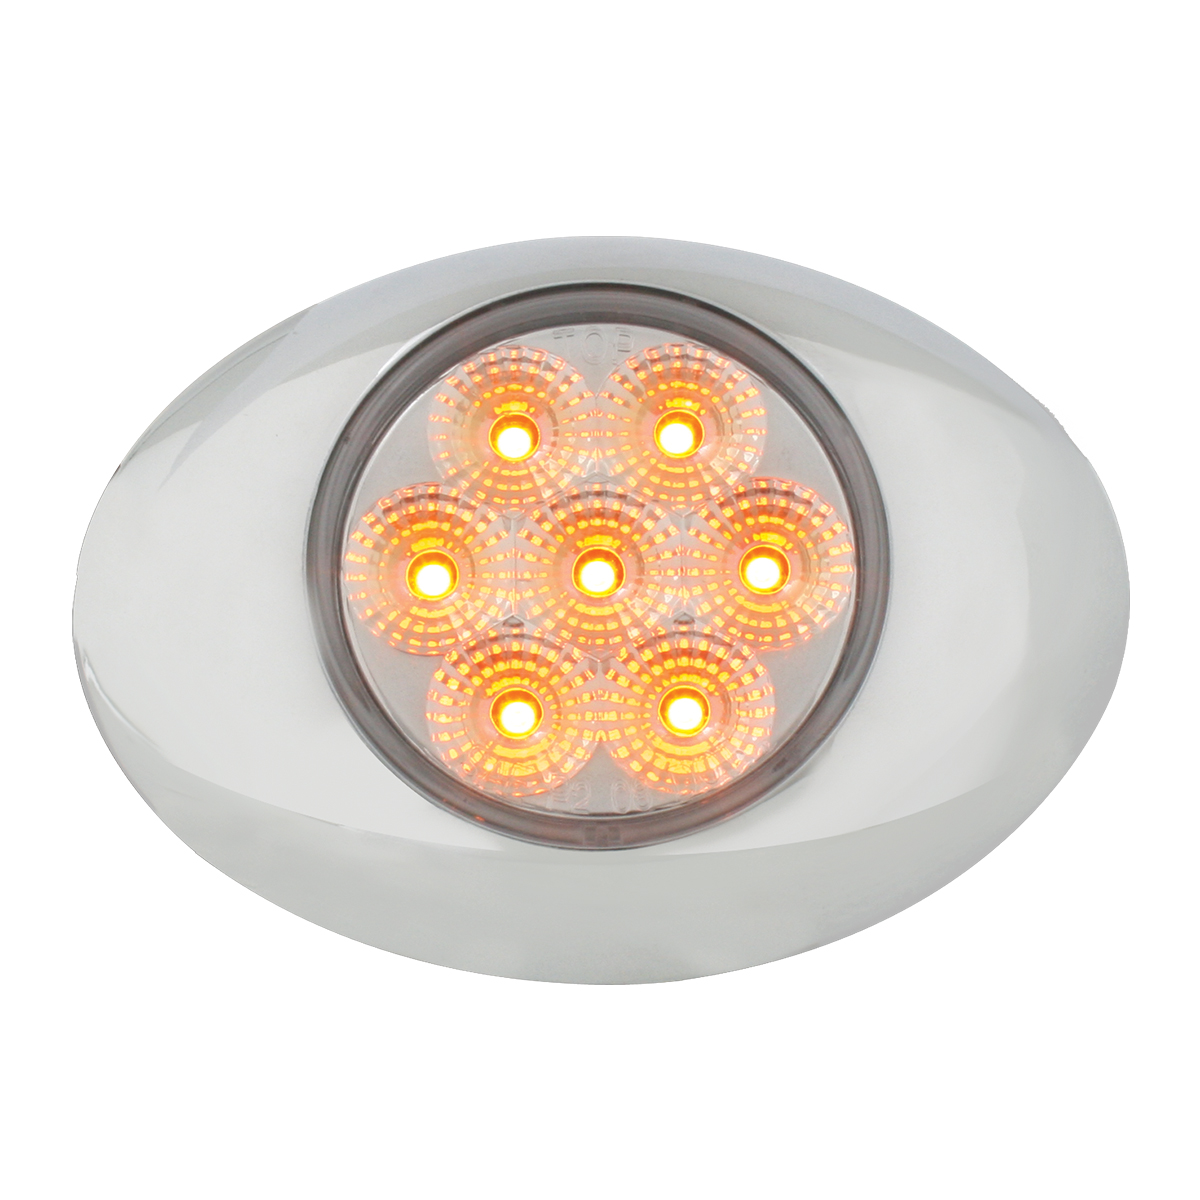 76196 Small Low Profile Surface Mount Spyder LED Marker & Turn Light w/ Chrome Bezel